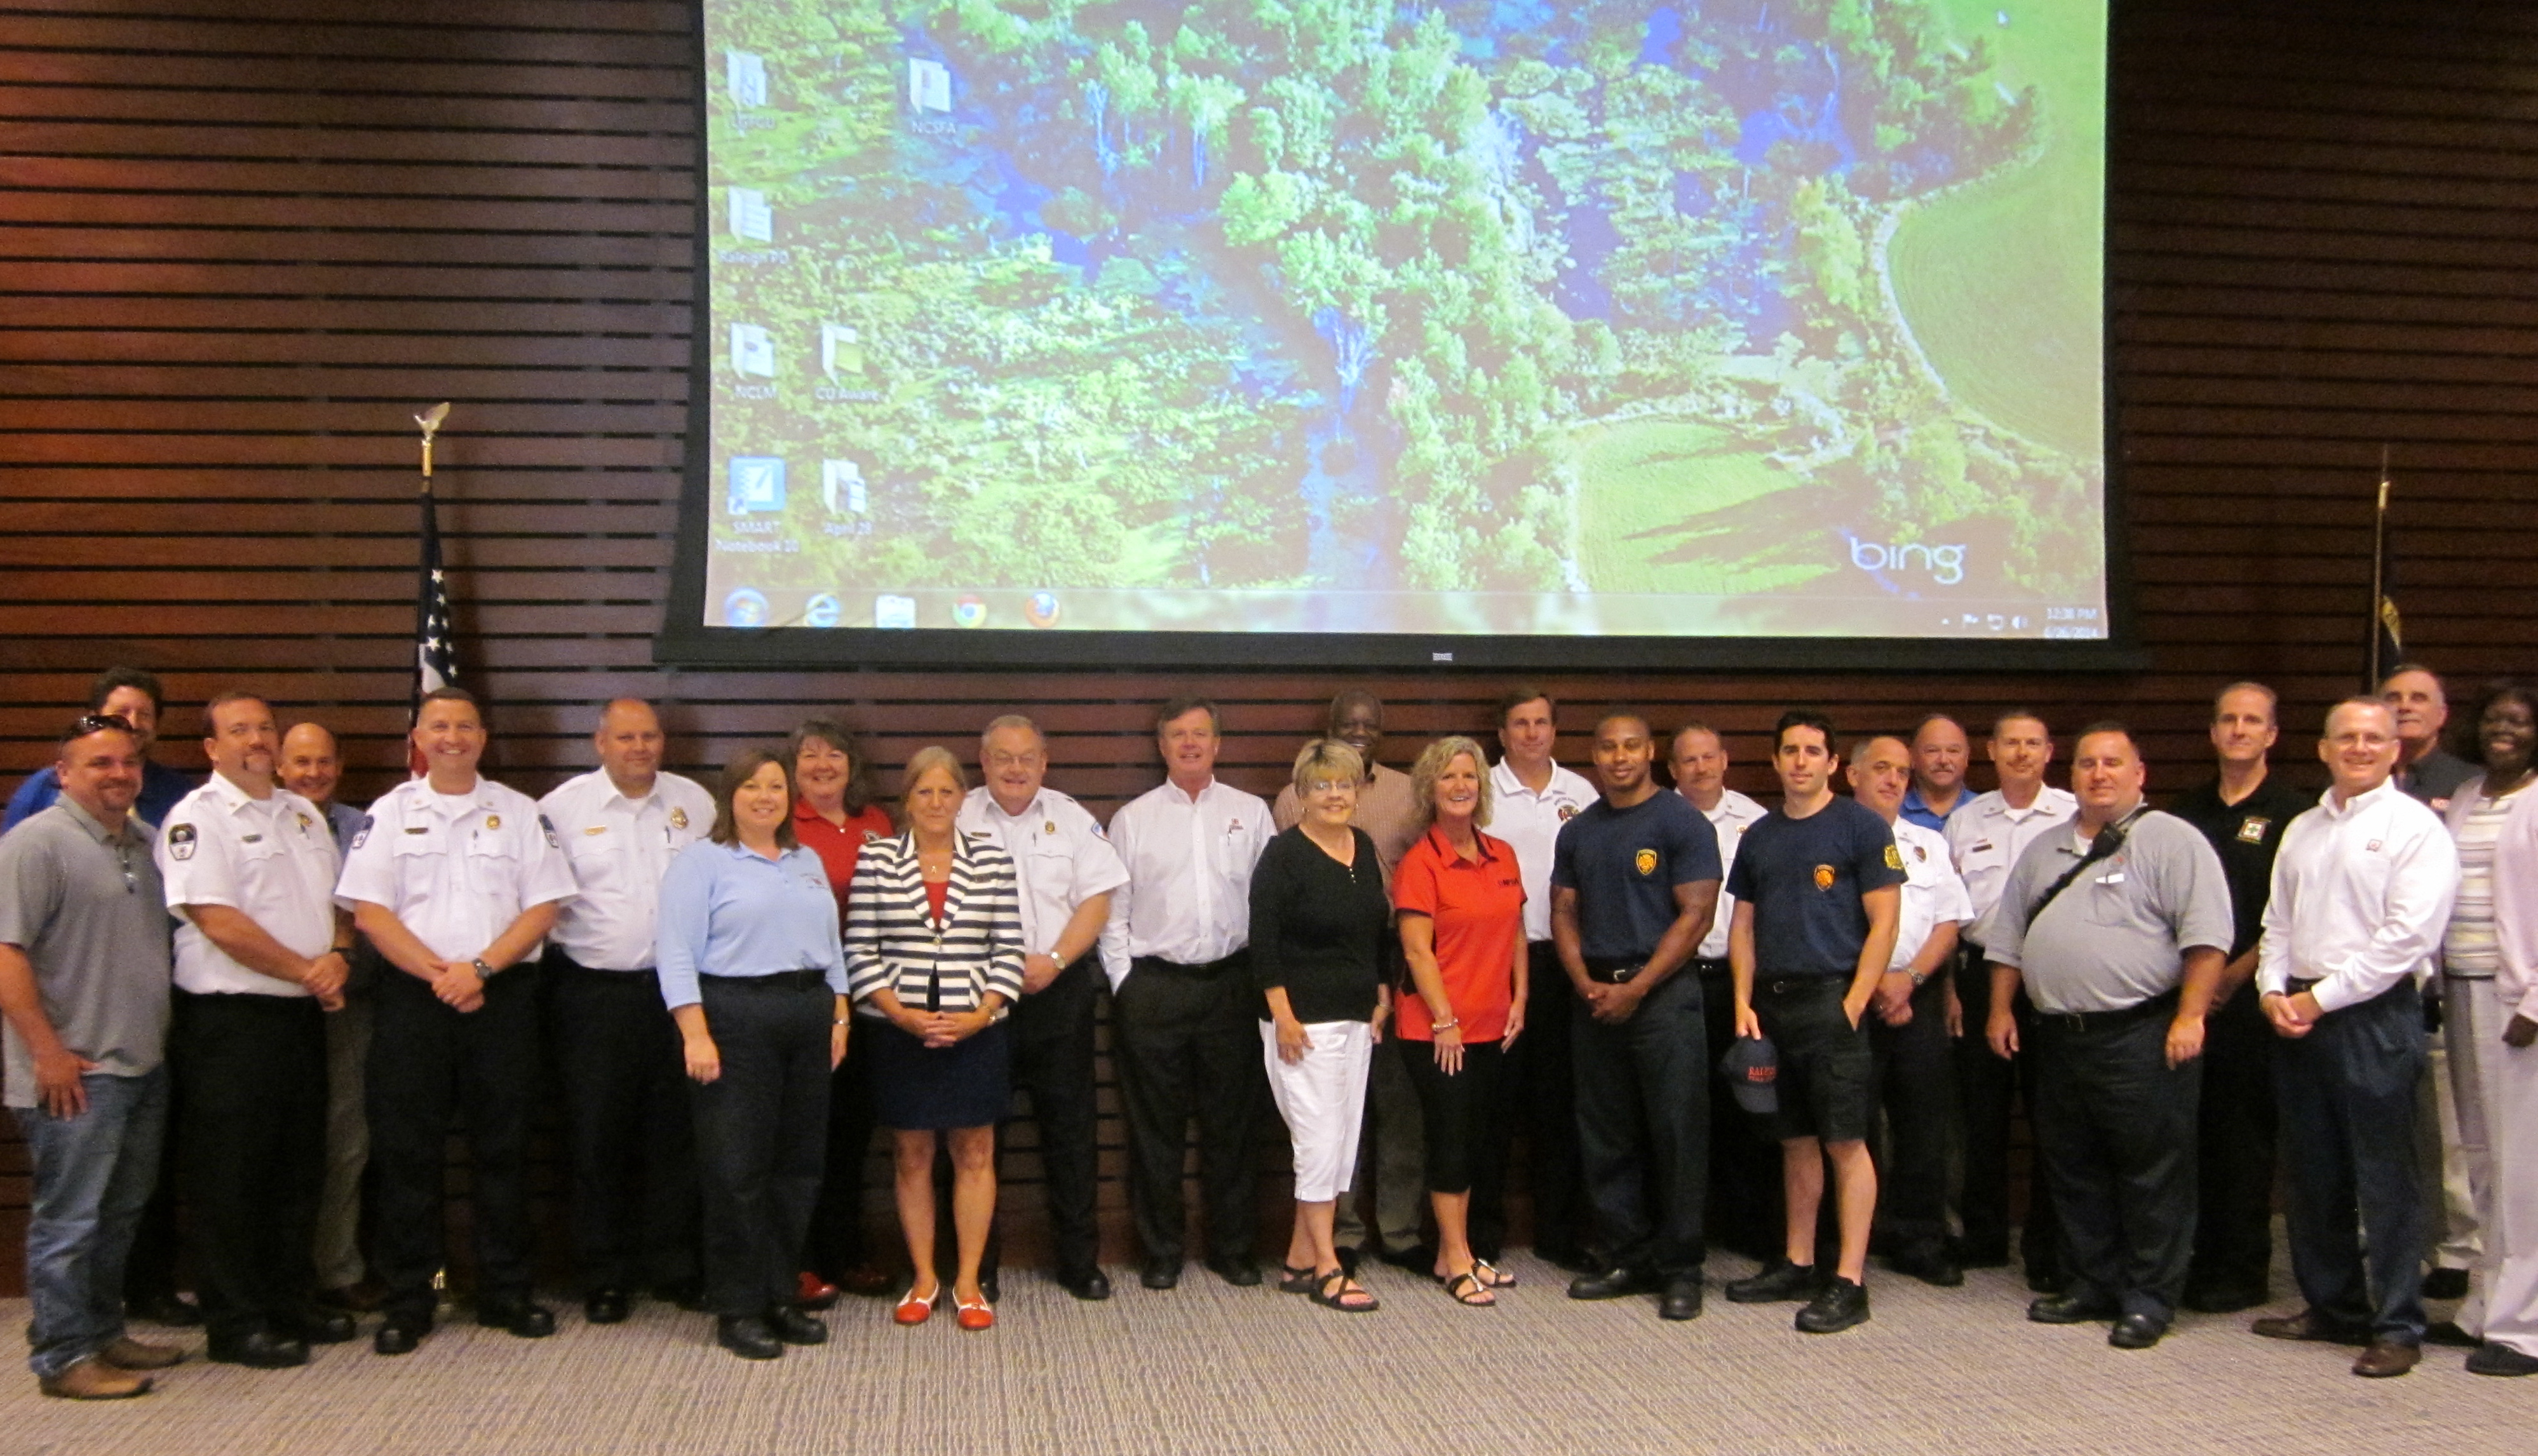 Members of the North Carolina Fire Sprinkler Coalition